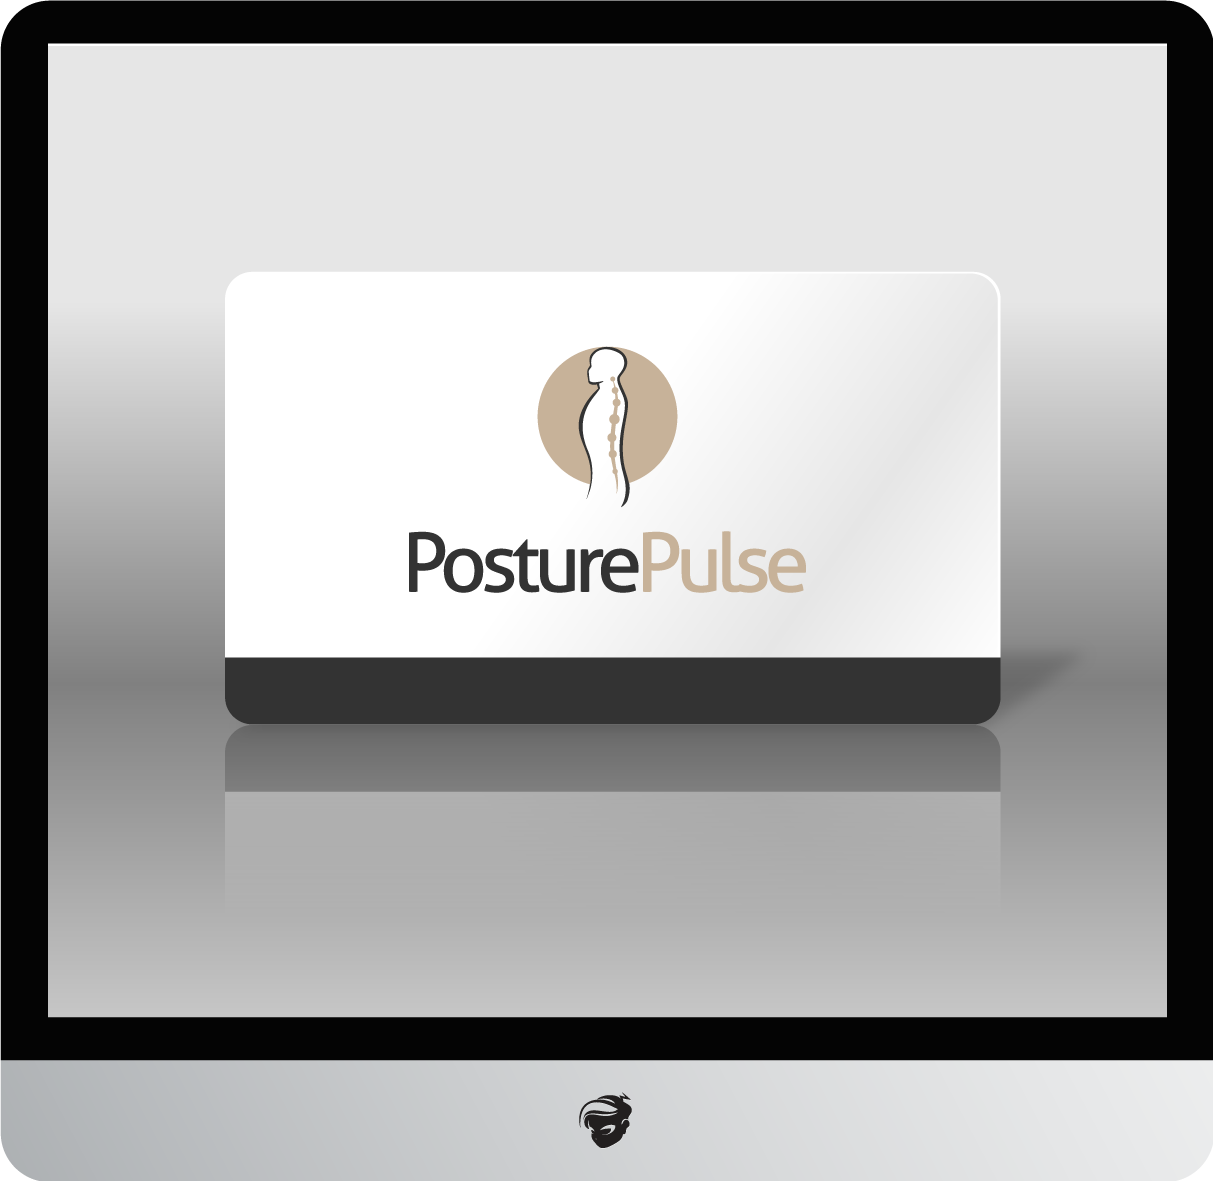 Logo Design by zesthar - Entry No. 104 in the Logo Design Contest Unique Logo Design Wanted for PosturePulse.